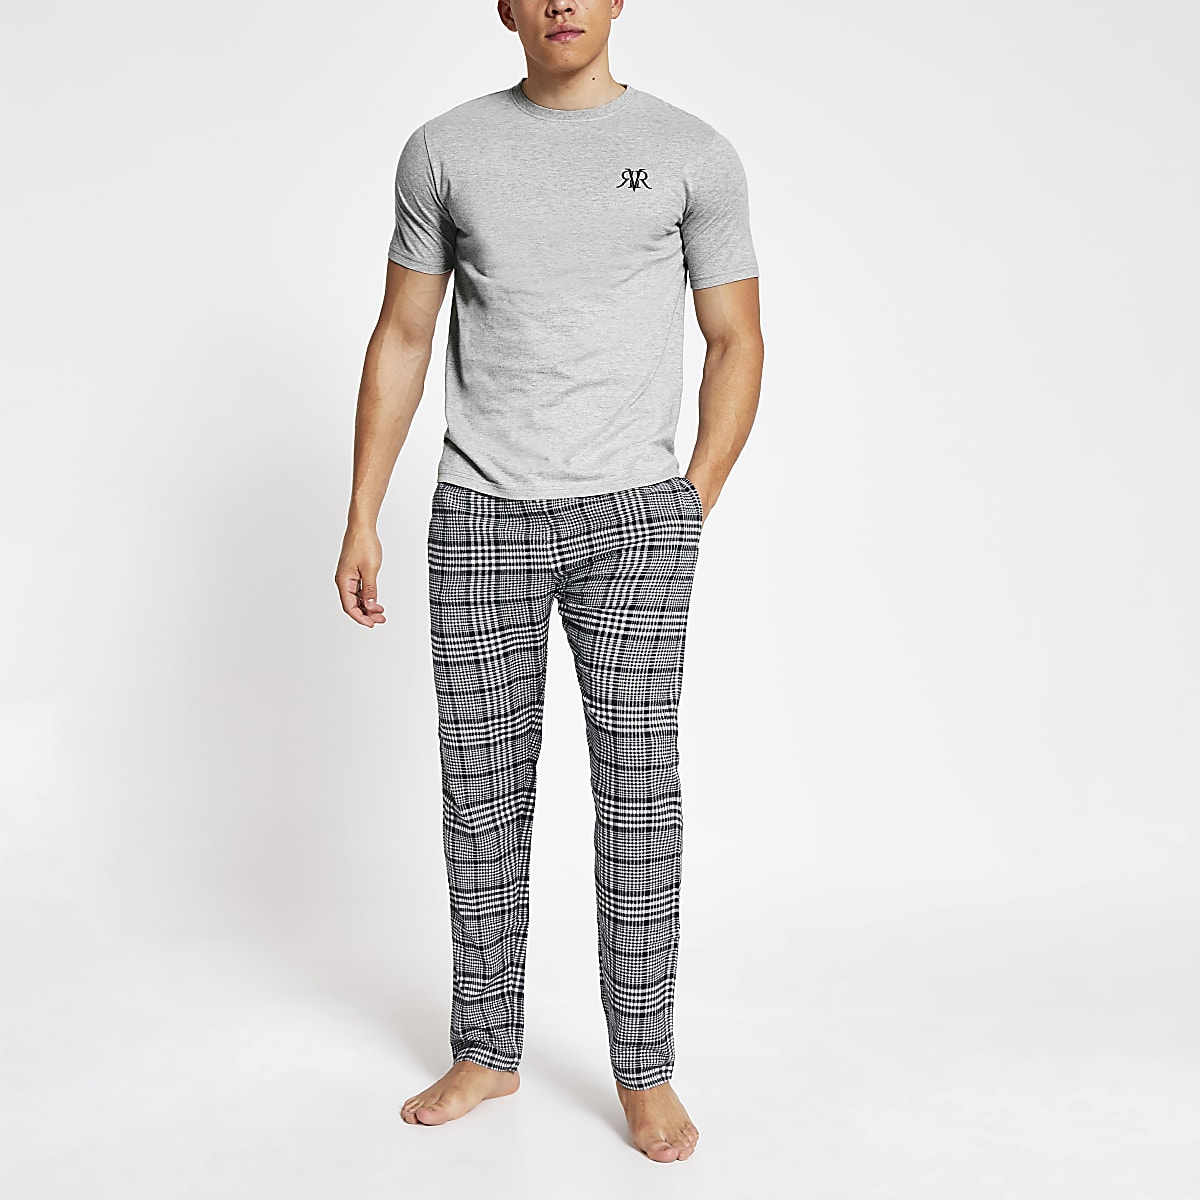 Grey check short sleeve loungewear set